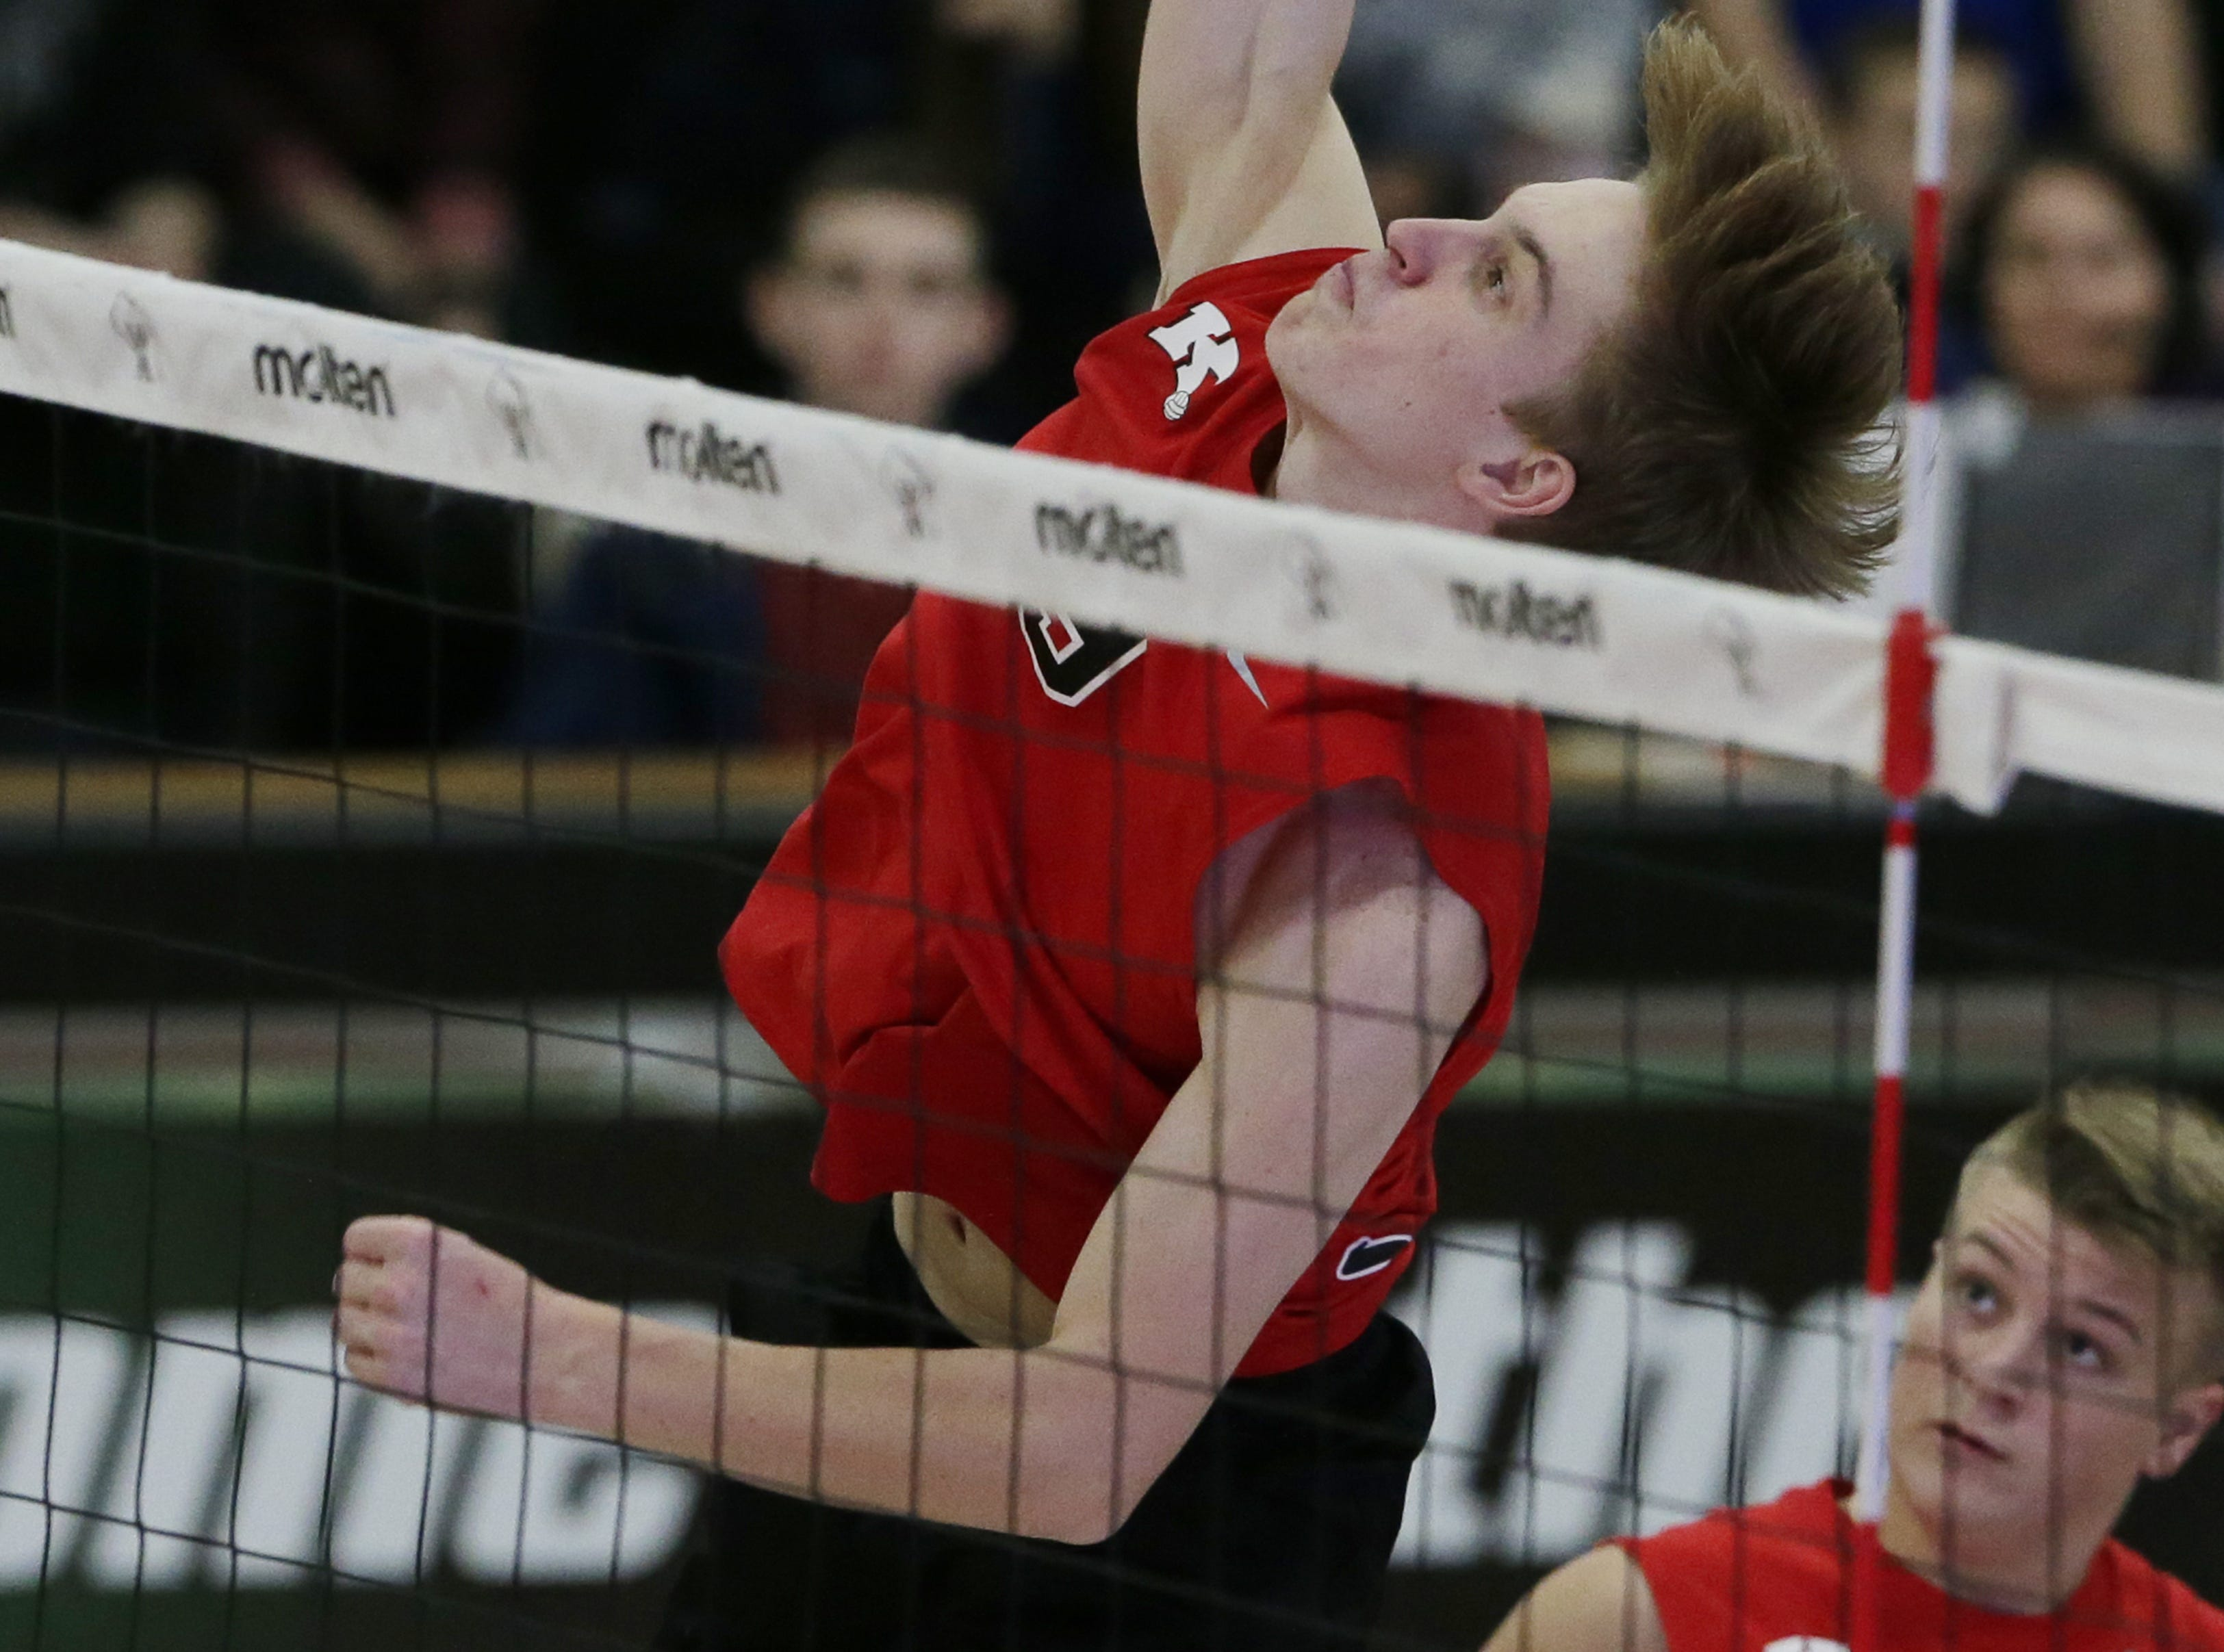 Kimberly's Tommy Clausz spikes the ball during their game.  Kimberly Papermakers played Germantown Warhawks in Division 1 WIAA State Boys Volleyball Championship, Saturday, November 10, 2018 at Wisconsin Lutheran College in Milwaukee, Wis. Joe Sienkiewicz/USA Today NETWORK-Wisconsin